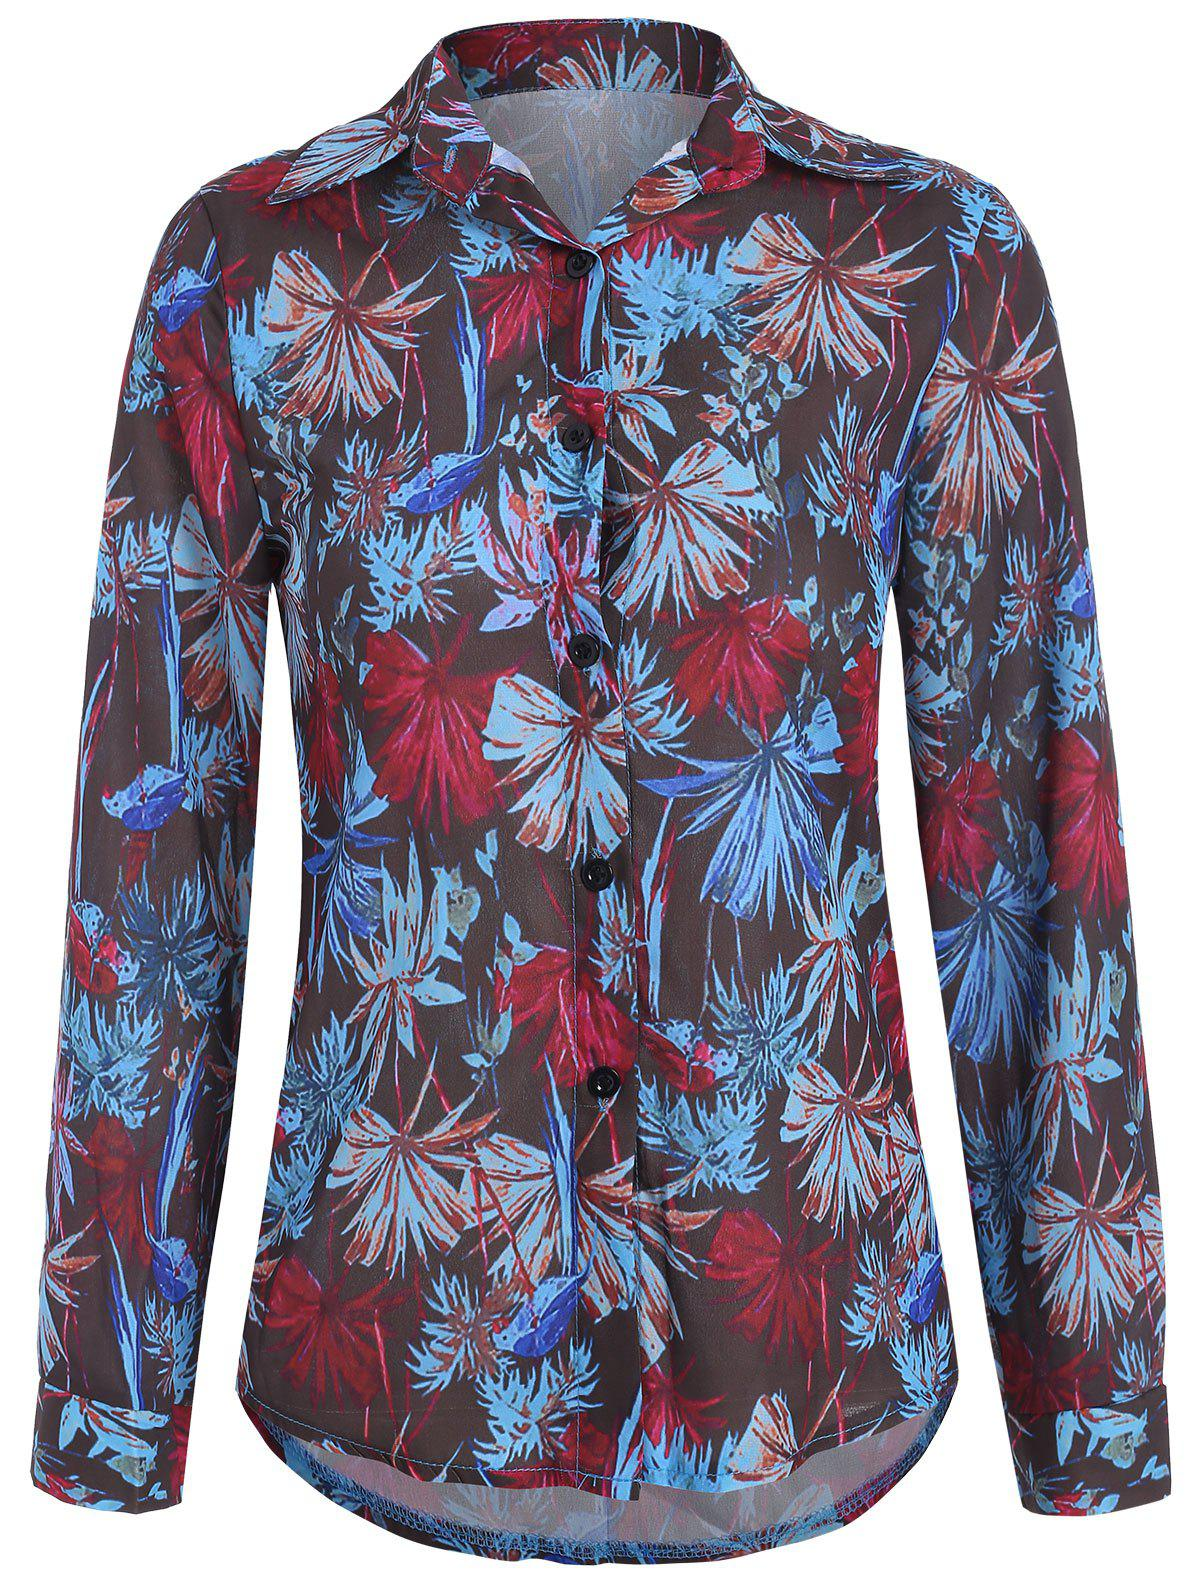 Best Casual Floral Printed Shirt